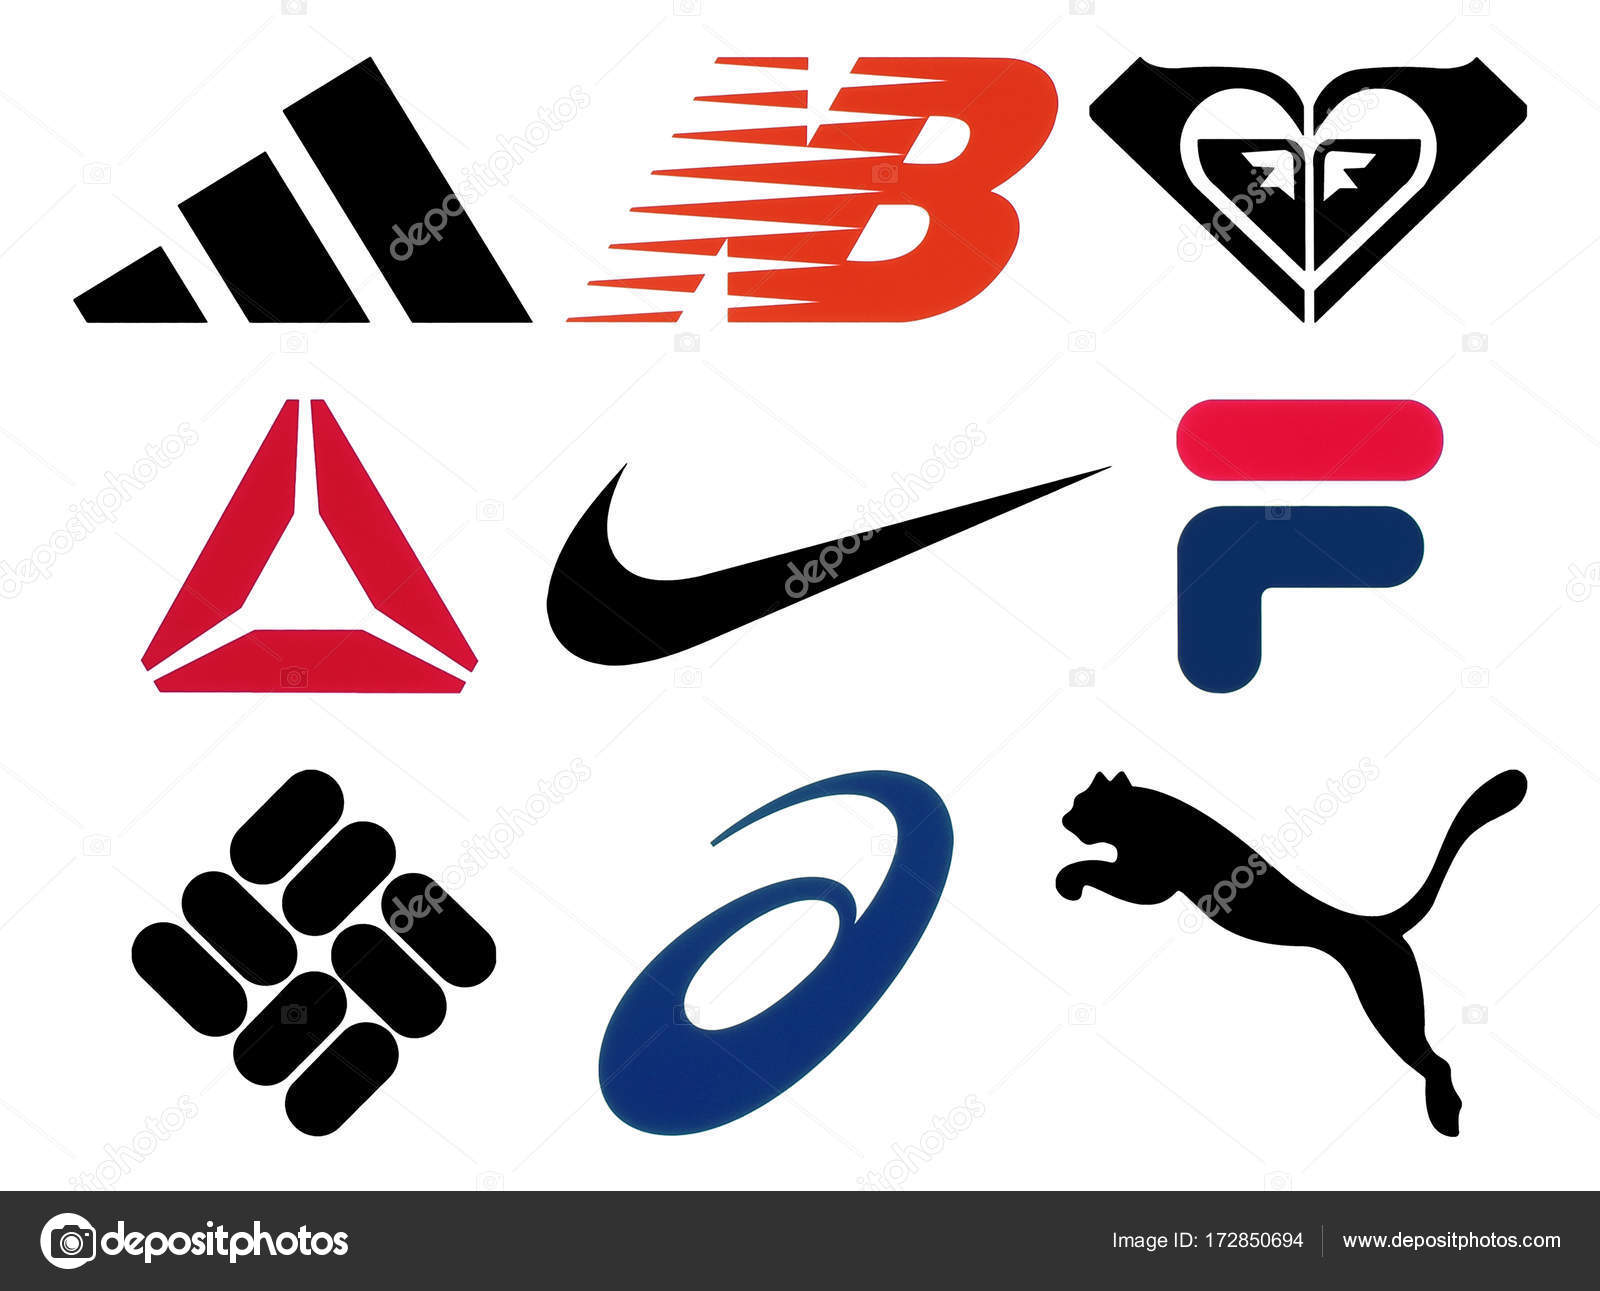 Set of popular sportswear manufactures logos stock editorial kiev ukraine october 27 2017 set of popular sportswear manufactures logos printed on paper adidas new balance roxy reebok nike fila columbia biocorpaavc Choice Image